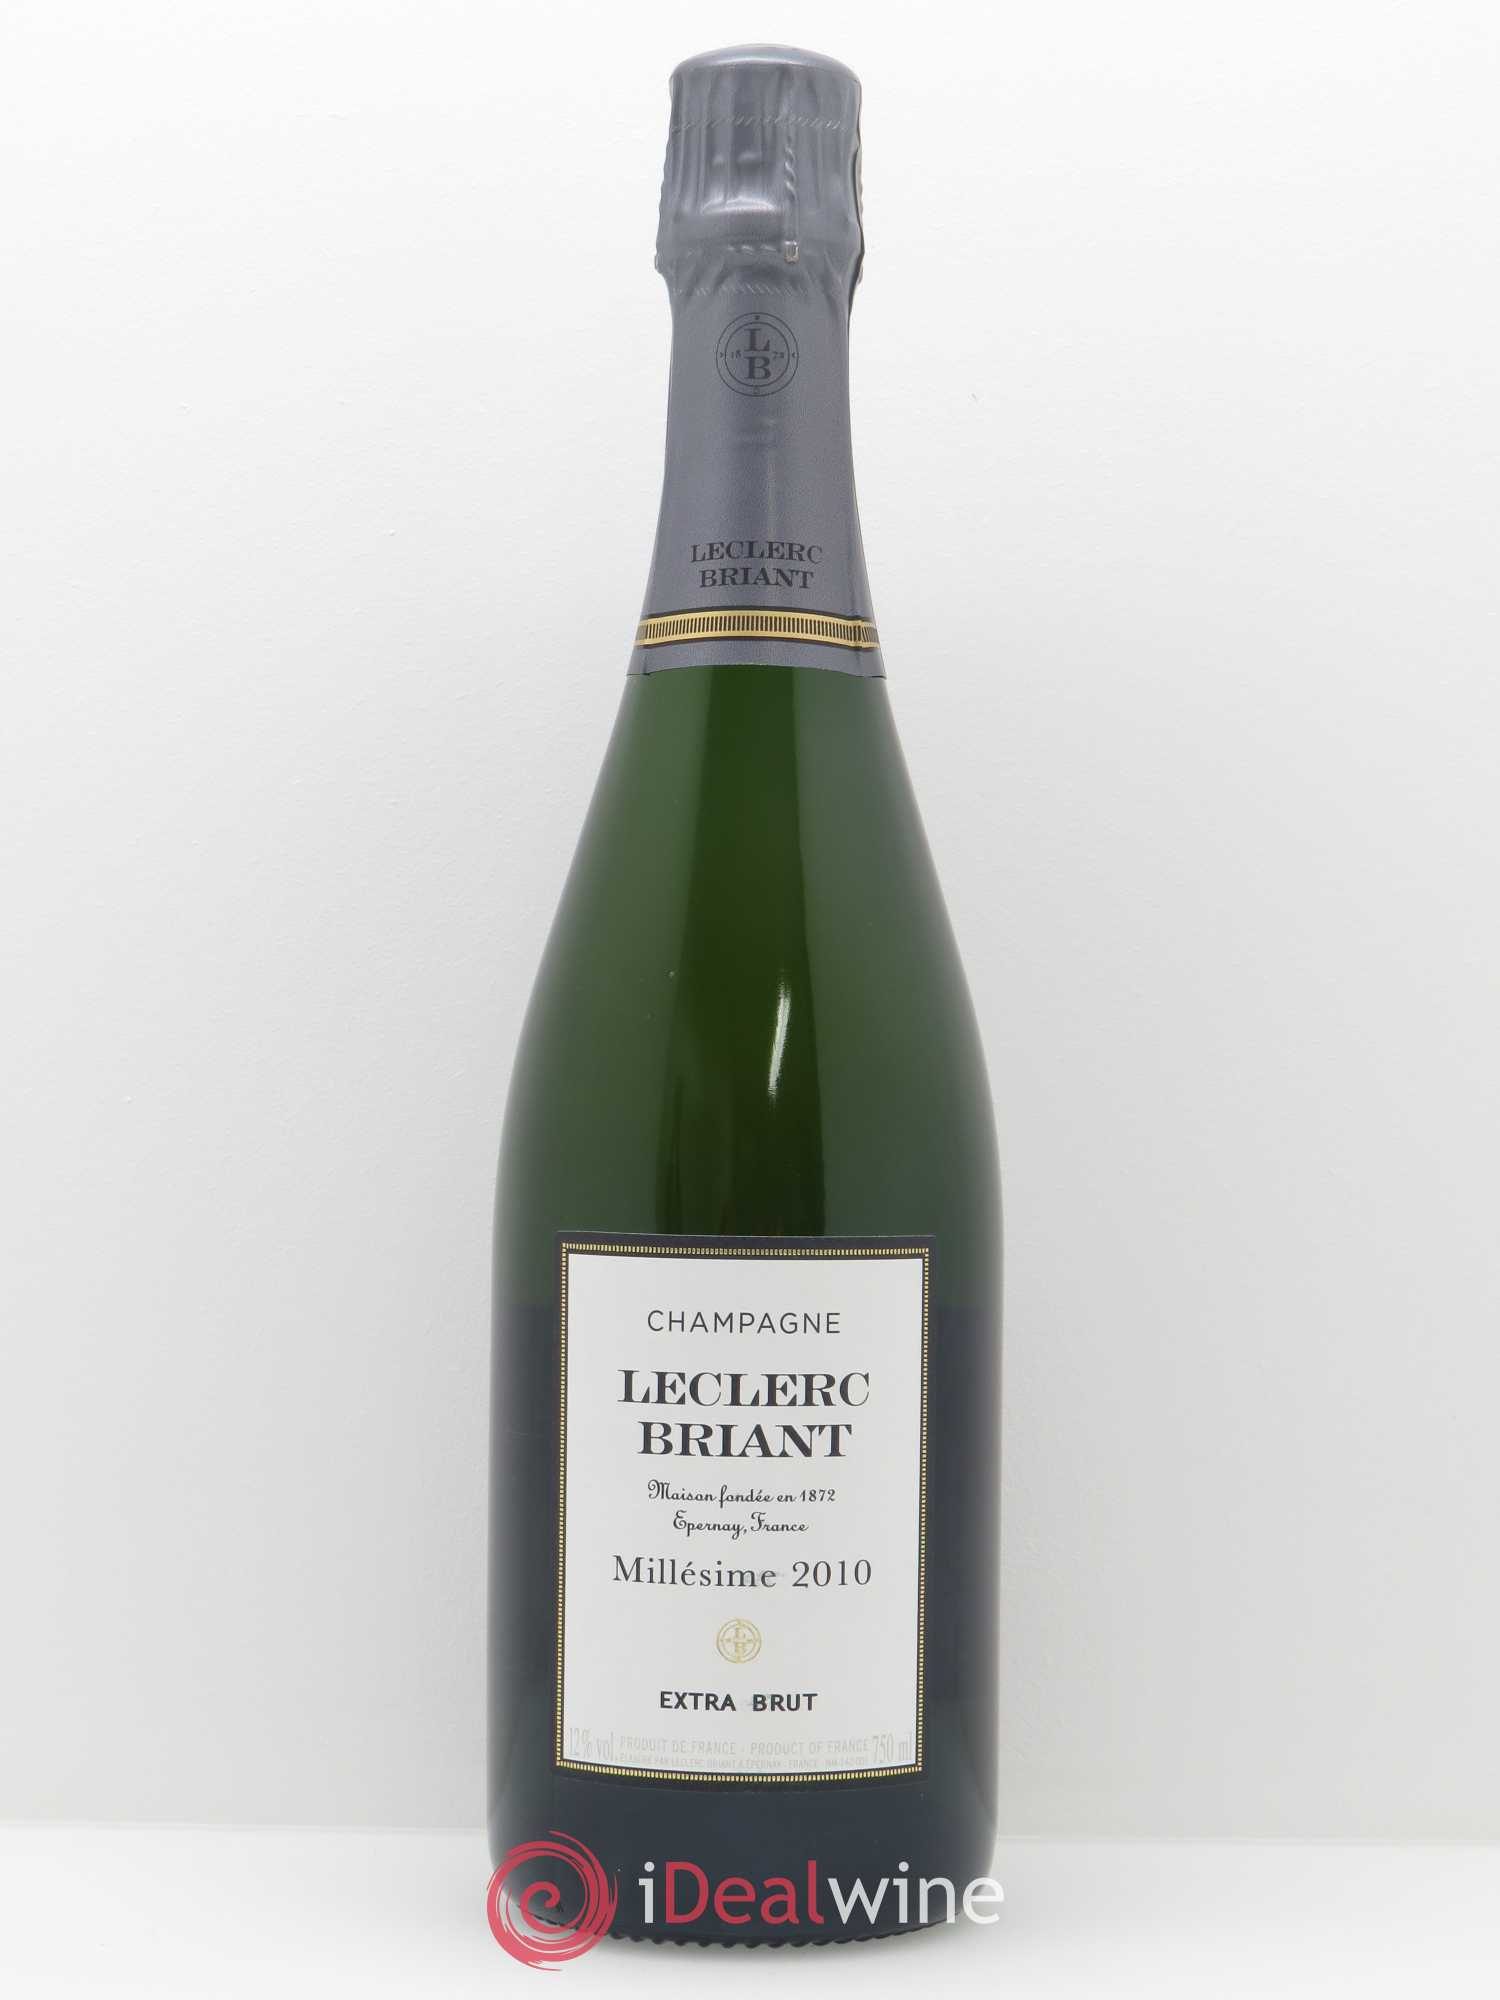 Brut Millésimé Leclerc Briant  2010 - Lot of 1 Bottle